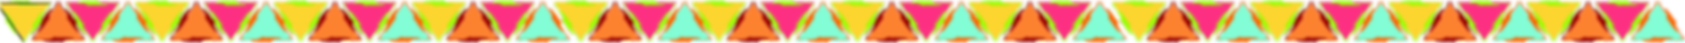 Colorful Triangle Border.png